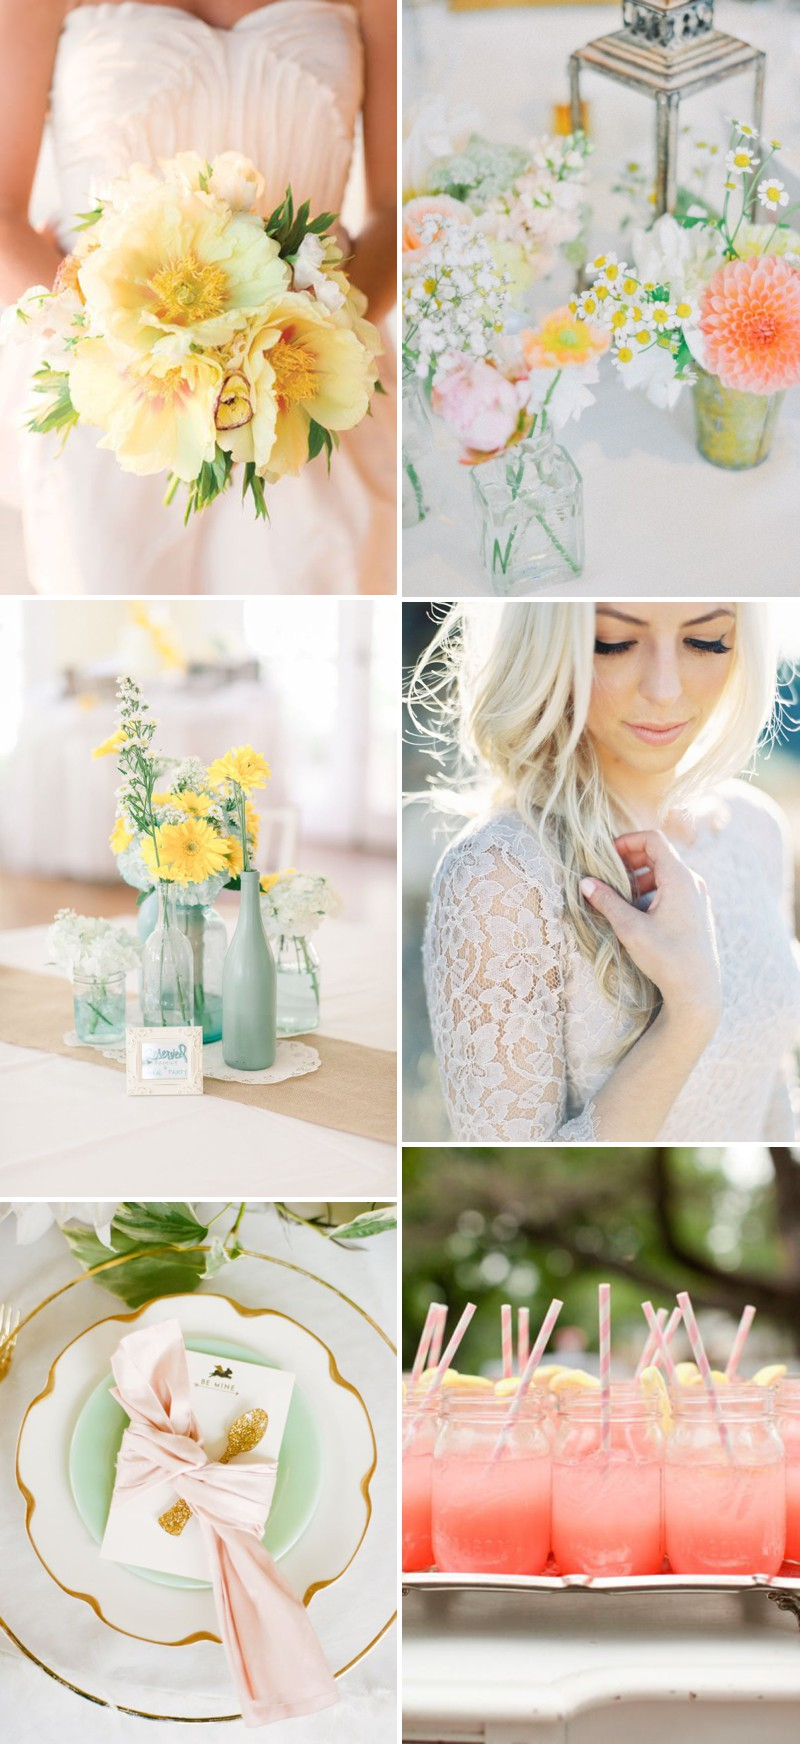 Rock My Wedding Announces The Winner Of Their Spring Pinterest Competition._0001